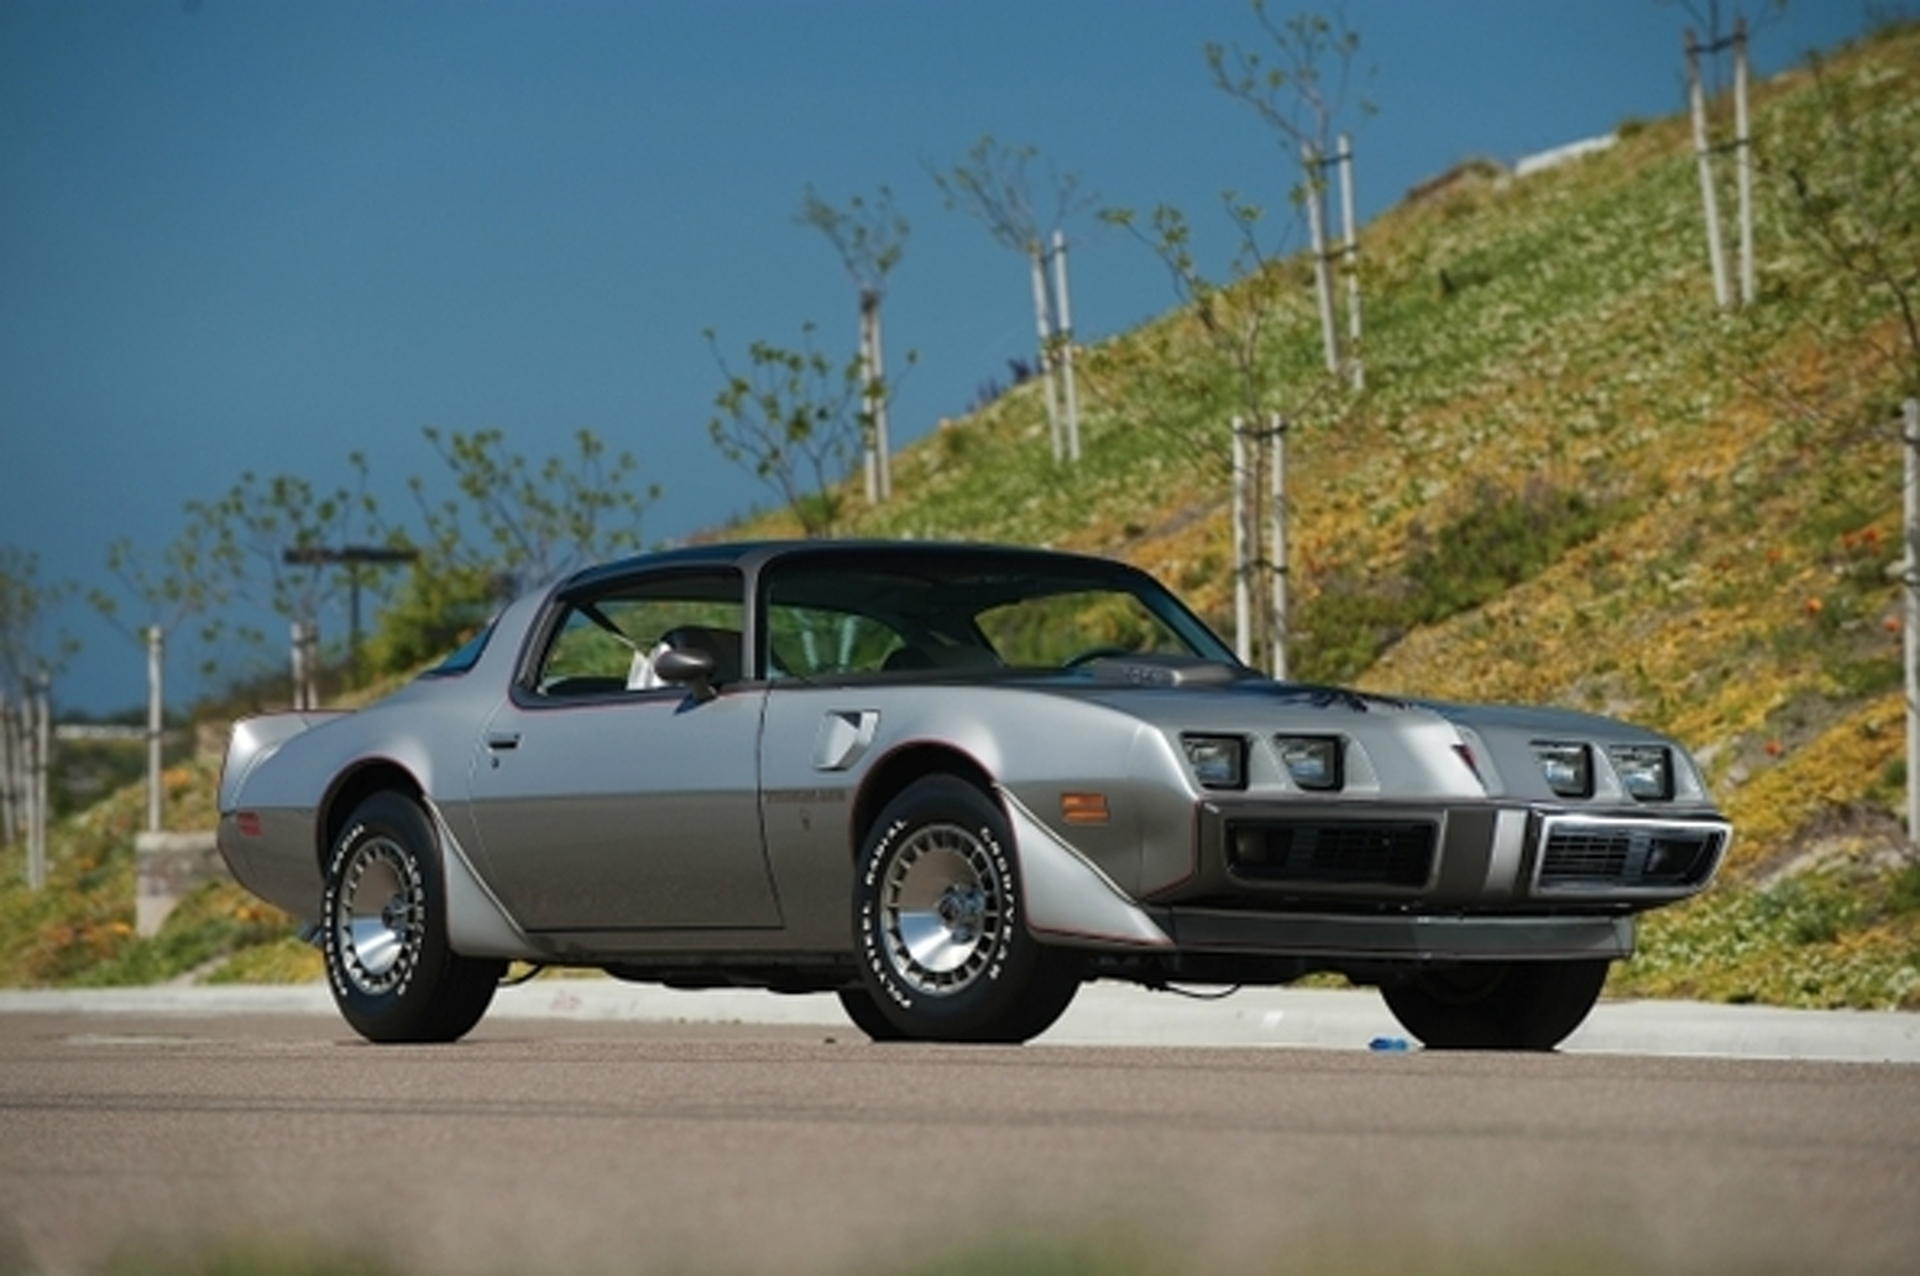 8 Forgotten Classic Cars of the 1980\'s We\'d Want to Own